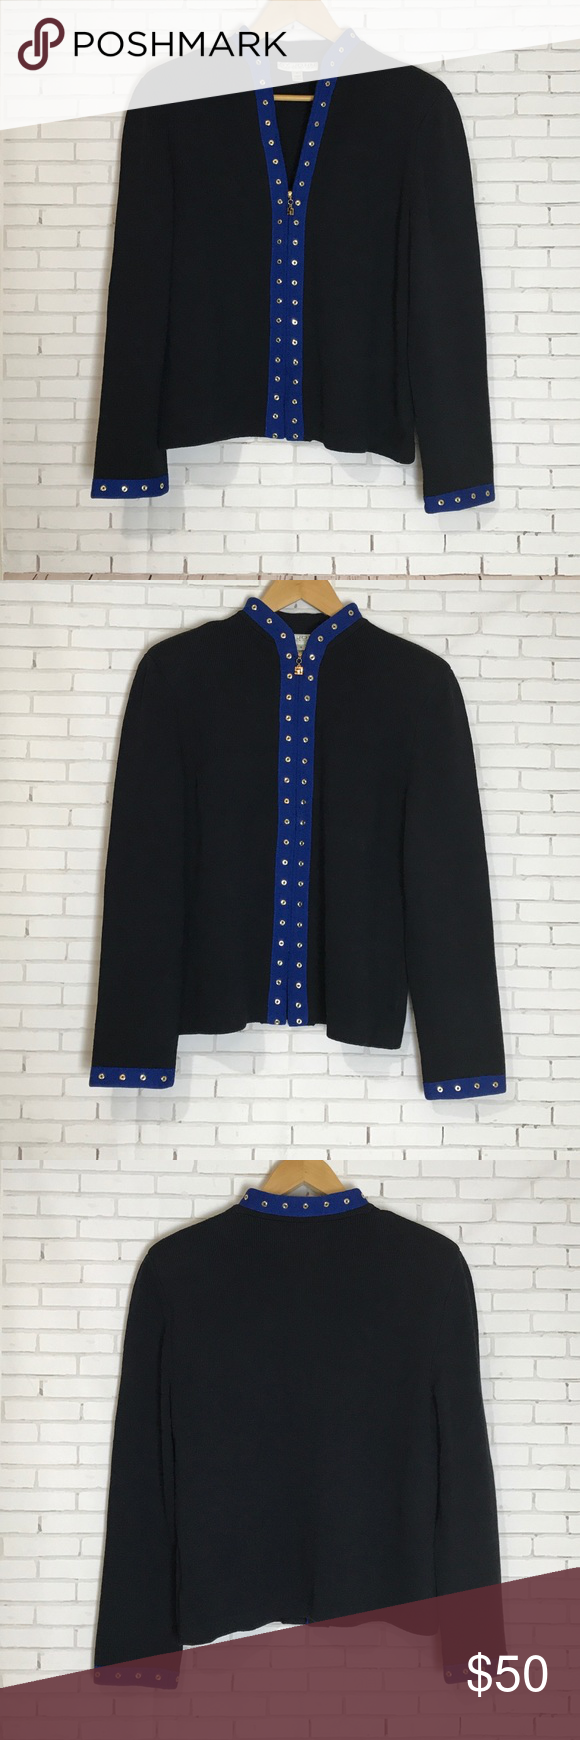 ST. Collection Black & Blue Cardigan Size 12 | Gold cardigan, Size ...